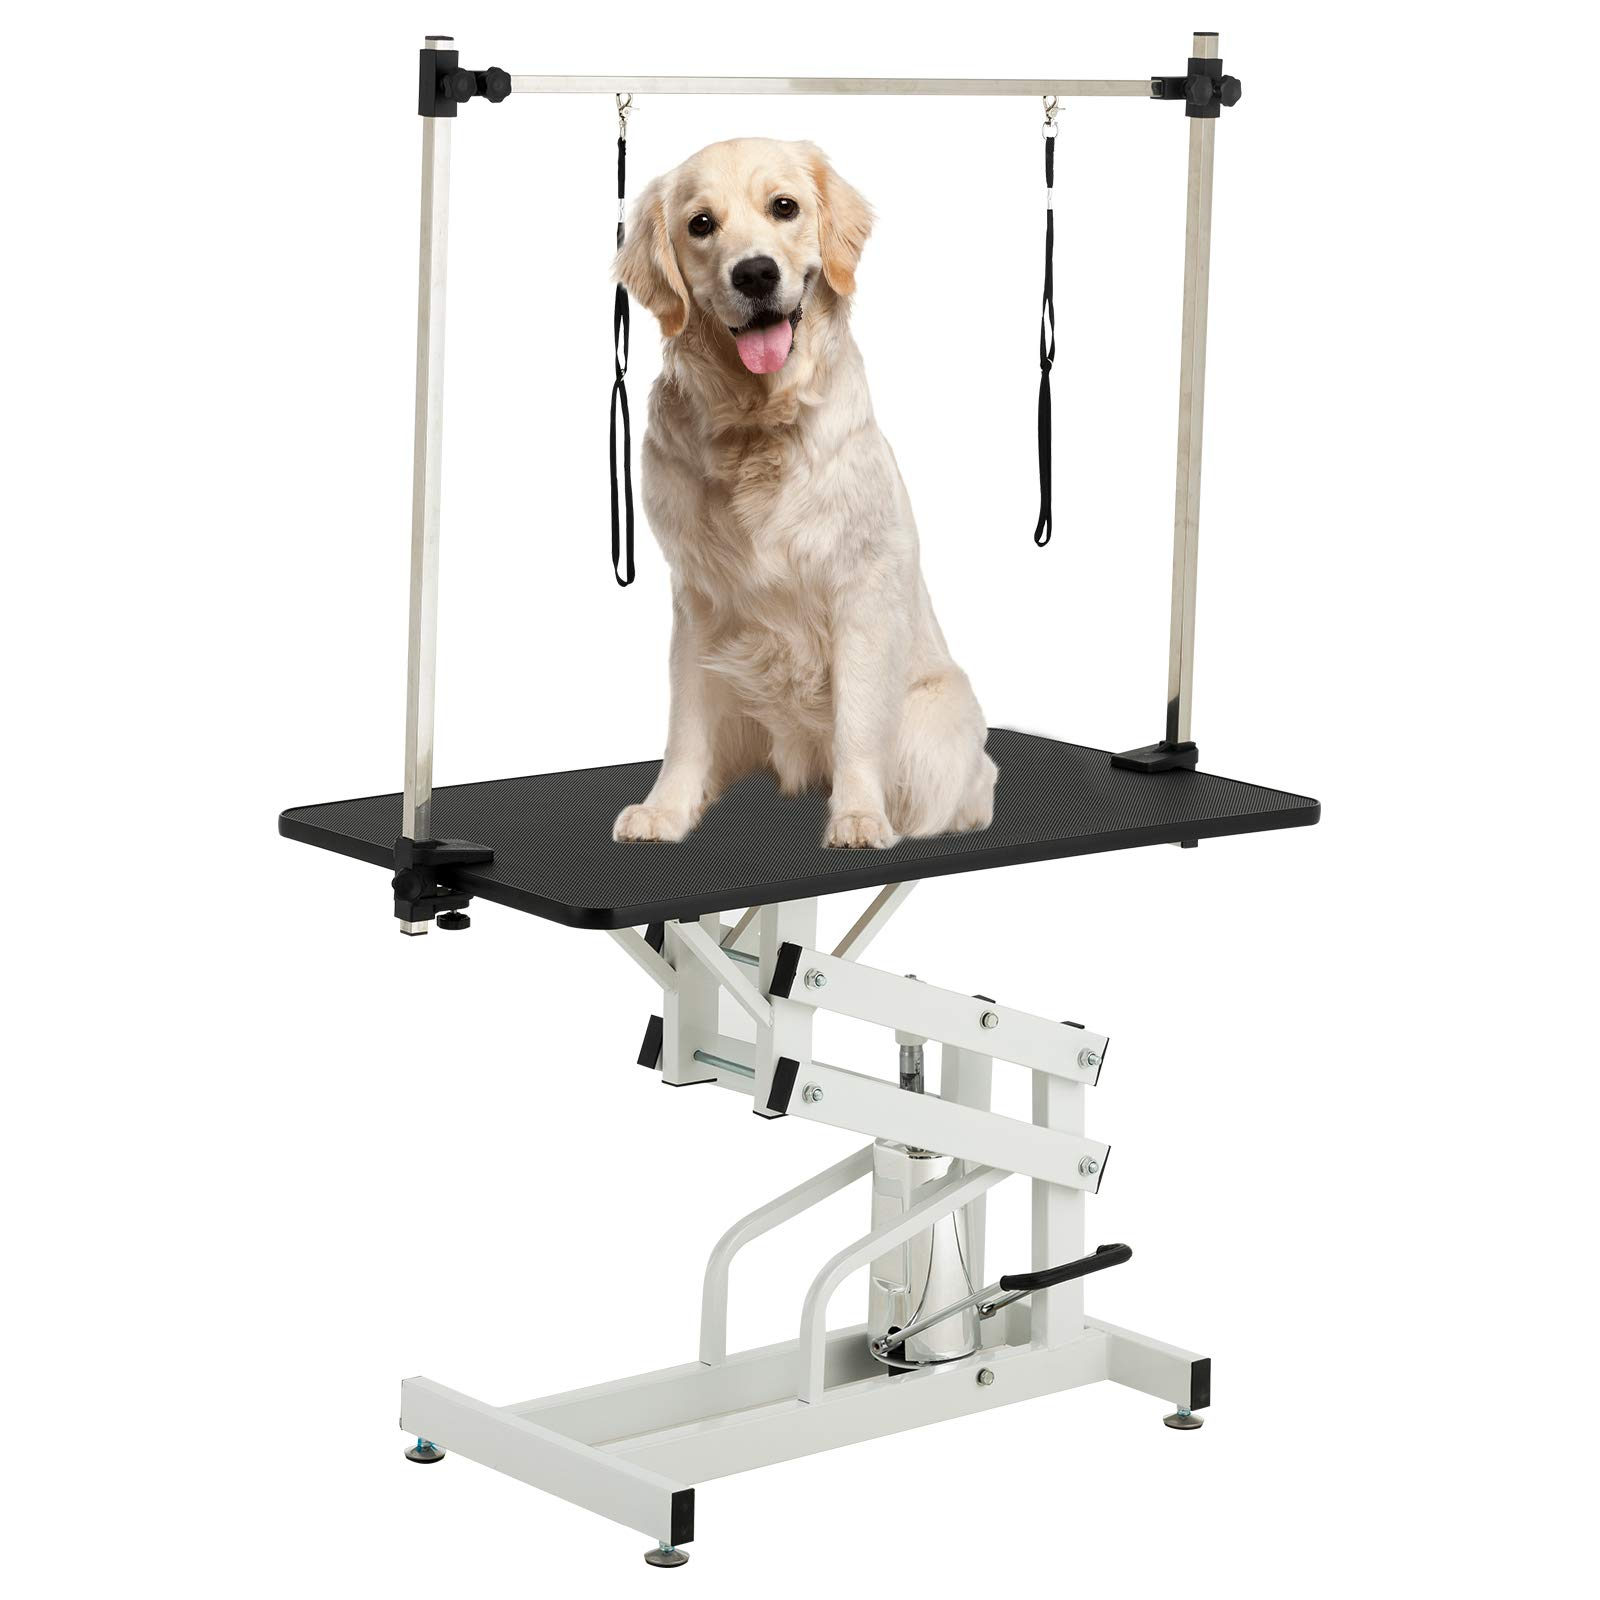 SUNCOO 43 Inch Hydraulic Pet Dog Grooming Table Upgraded Professional Drying Table Heavy Duty Stainless Steel Frame with Adjustable Arm and Noose 400lbs Capacity Height Range 22-39 Inch by SUNCOO